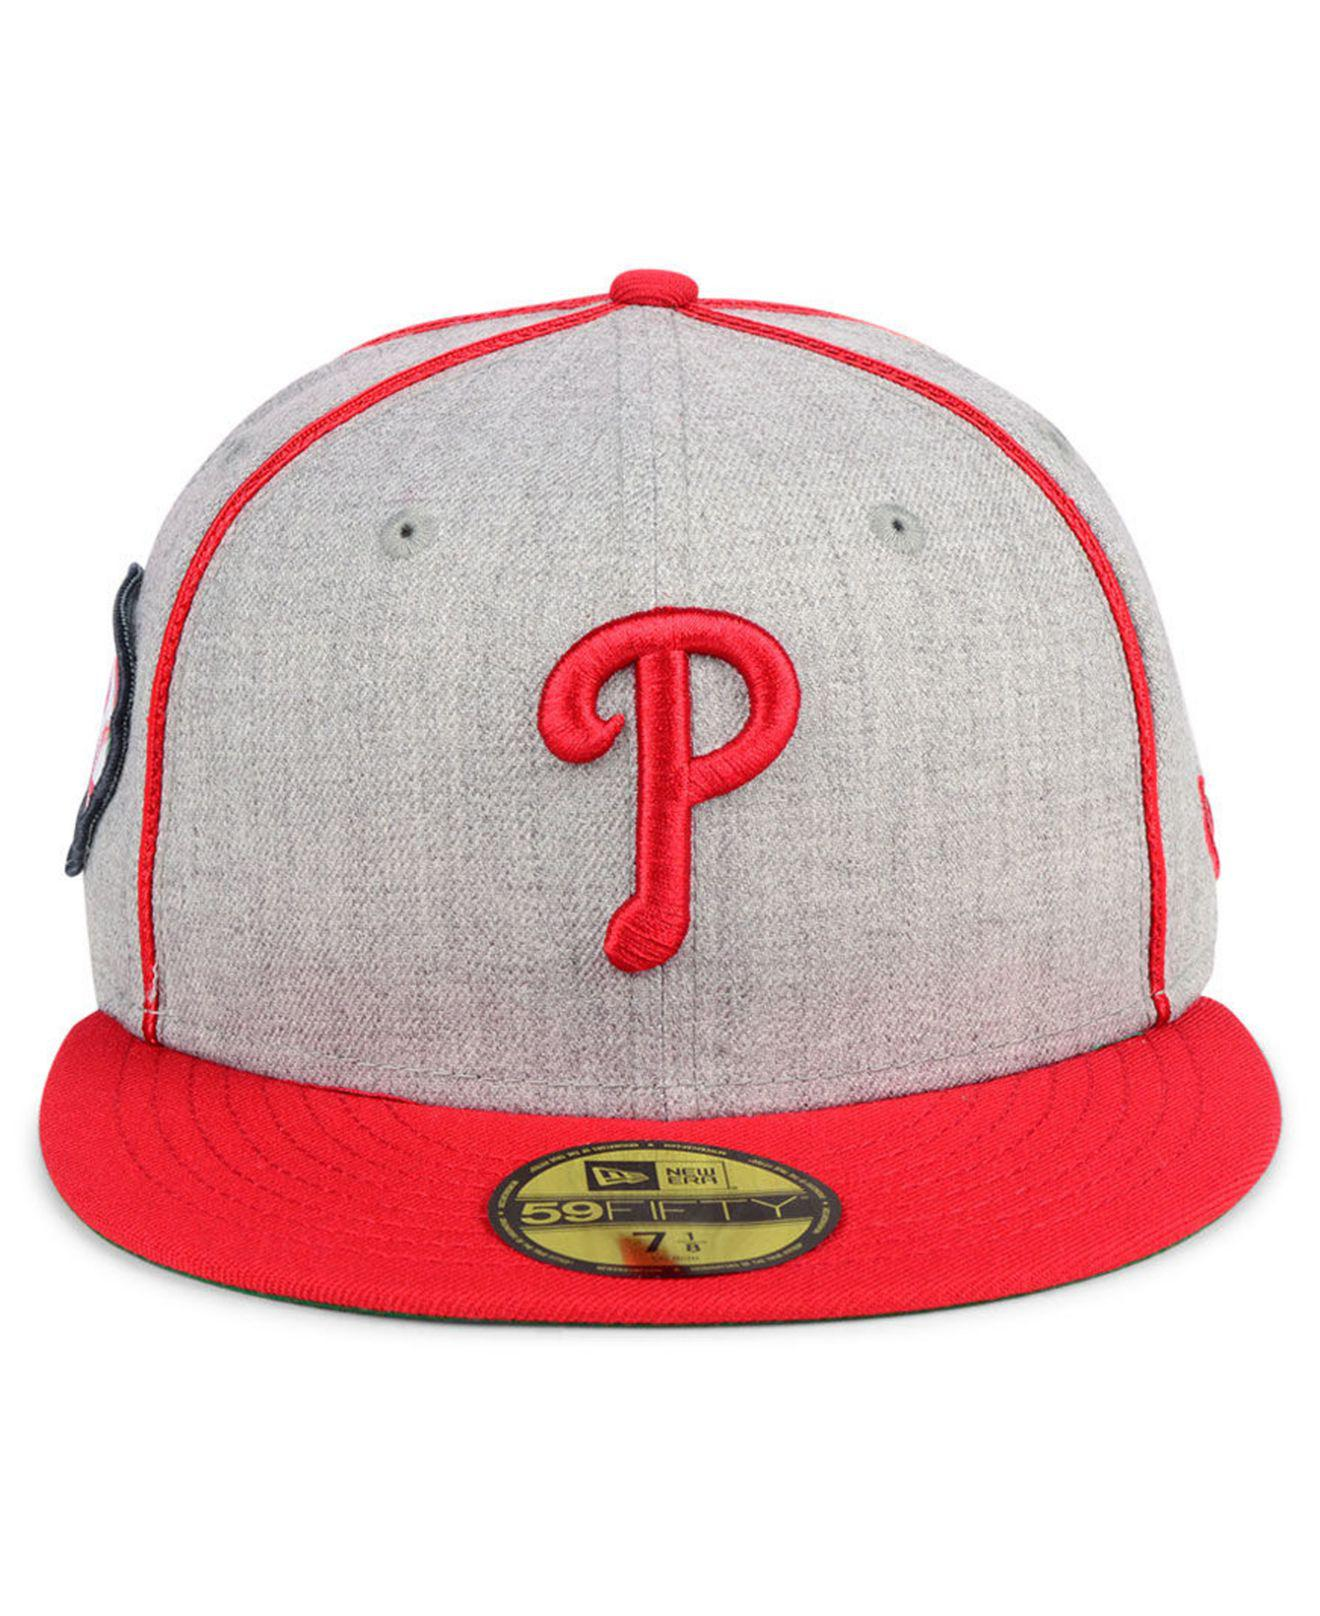 various colors c8c33 96b0e ... inexpensive cheap philadelphia phillies stache 59fifty fitted cap for  men lyst. view fullscreen 346a1 df5cf